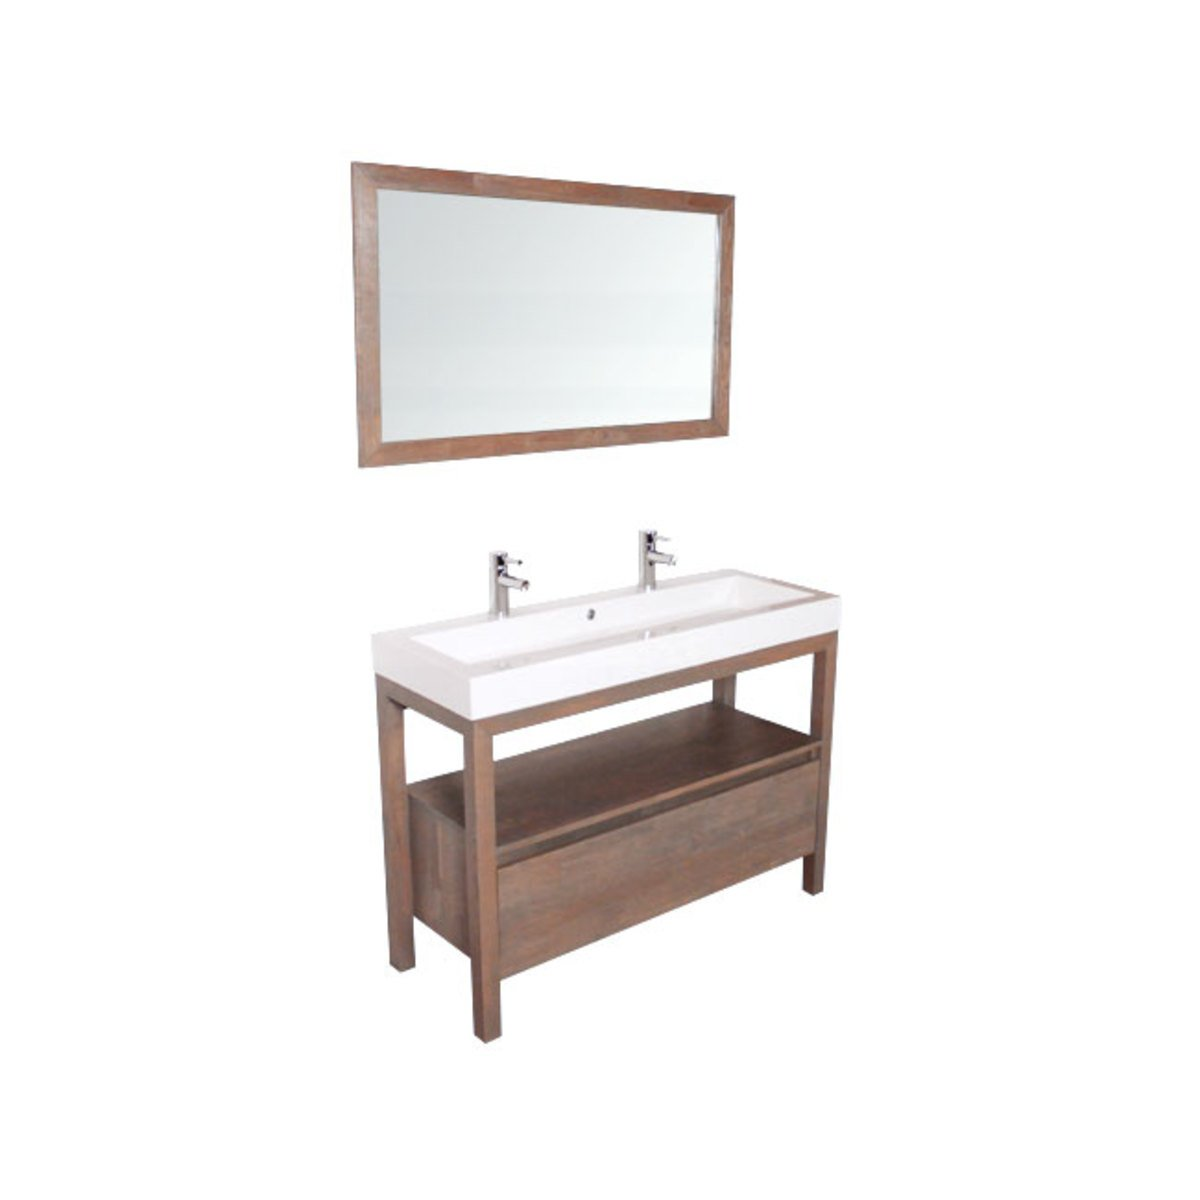 saniclass natural wood meuble salle de bain avec miroir 120cm grey wash avec vasque blanc 2. Black Bedroom Furniture Sets. Home Design Ideas